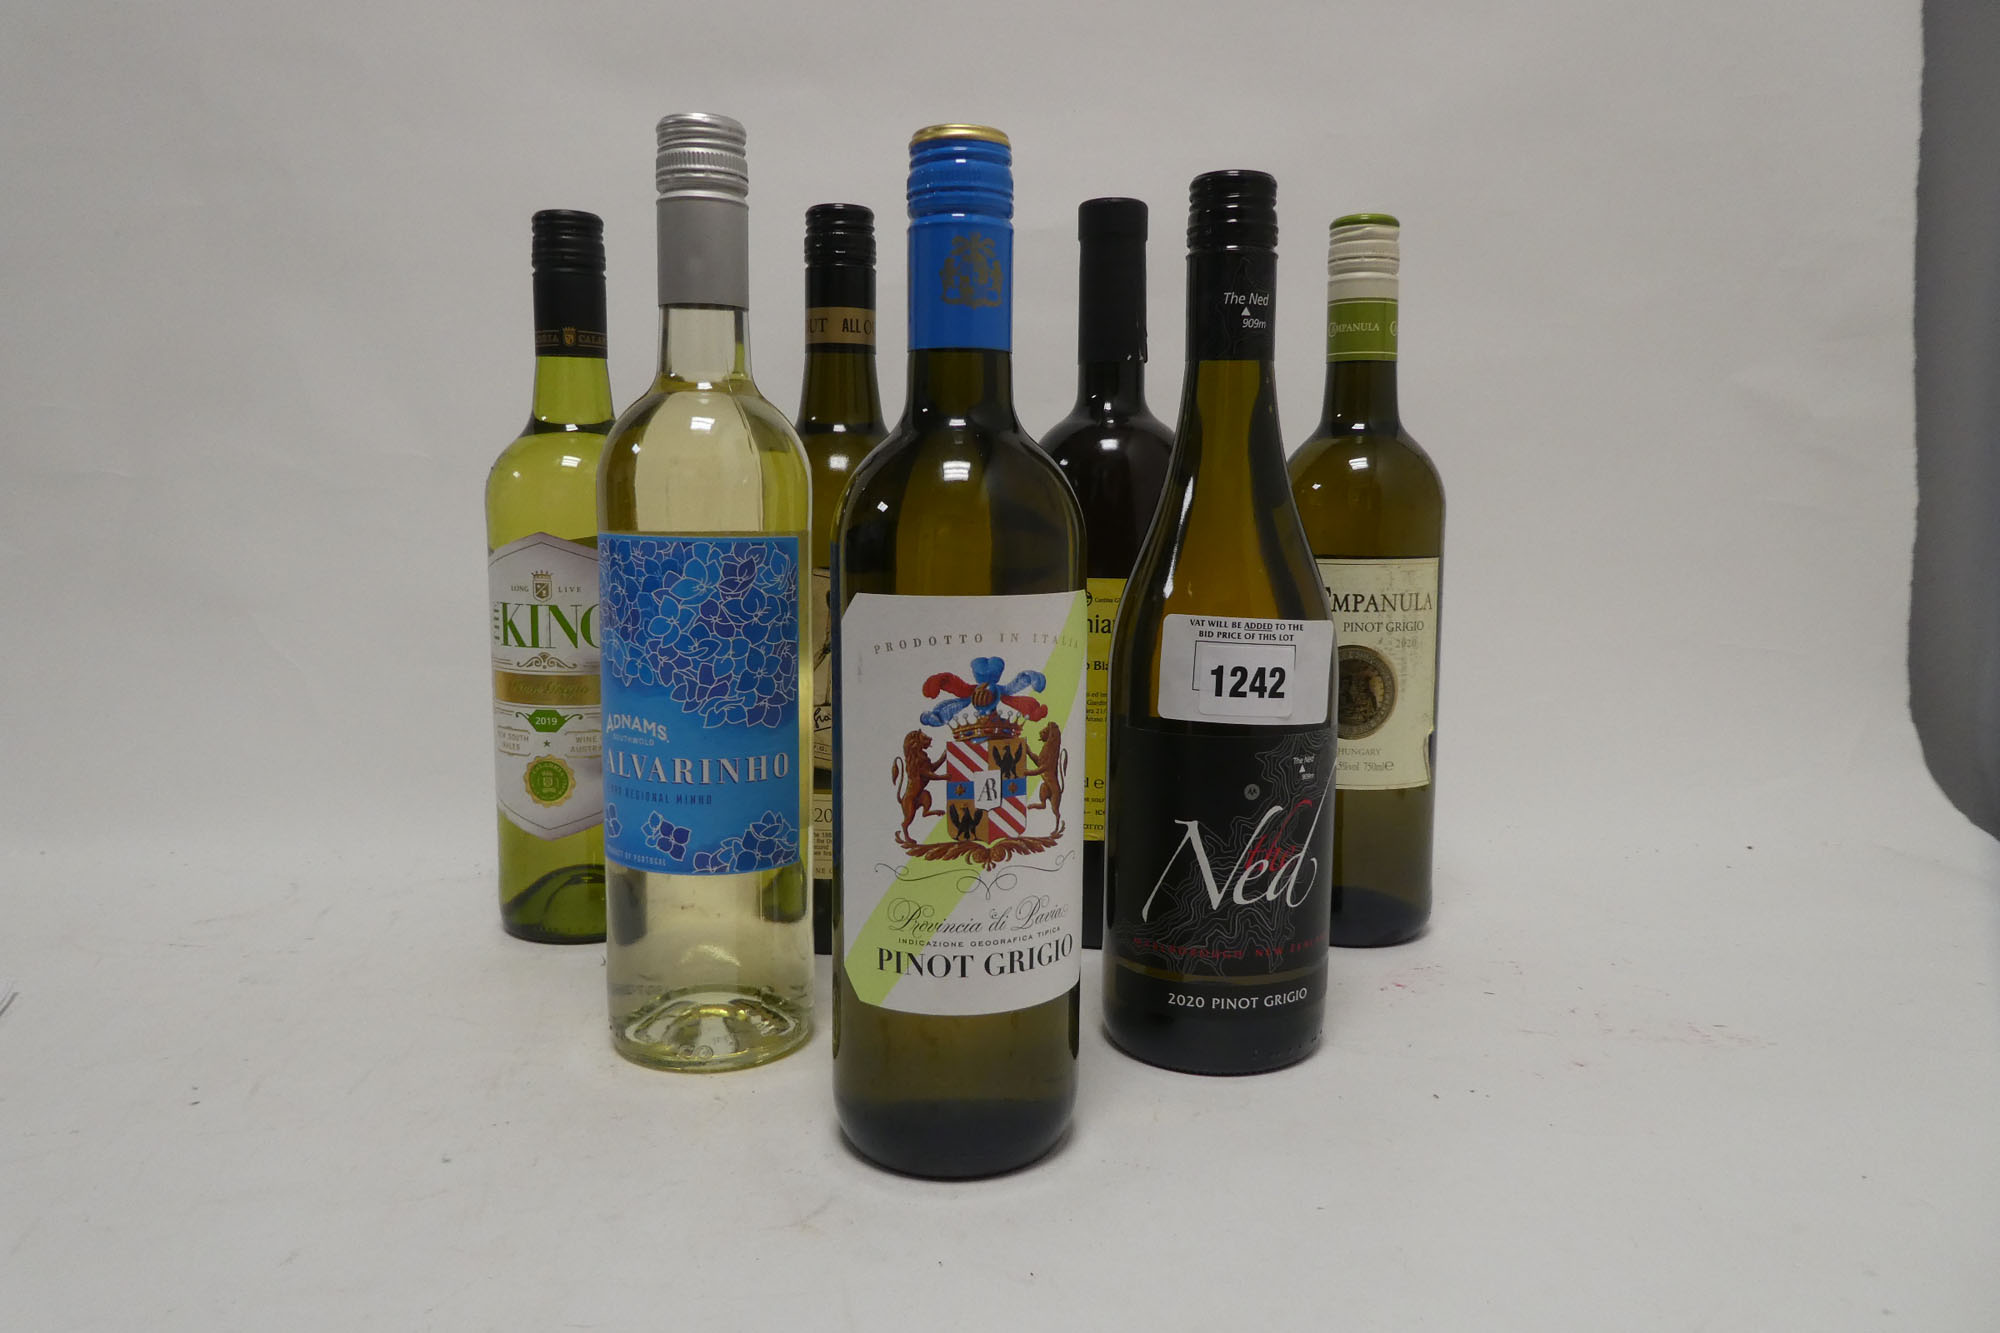 7 bottles white wines, 1x Ned Pinot Grigio 2020 New Zealand, 1x All Out 20 Pinot Grigio Australia,